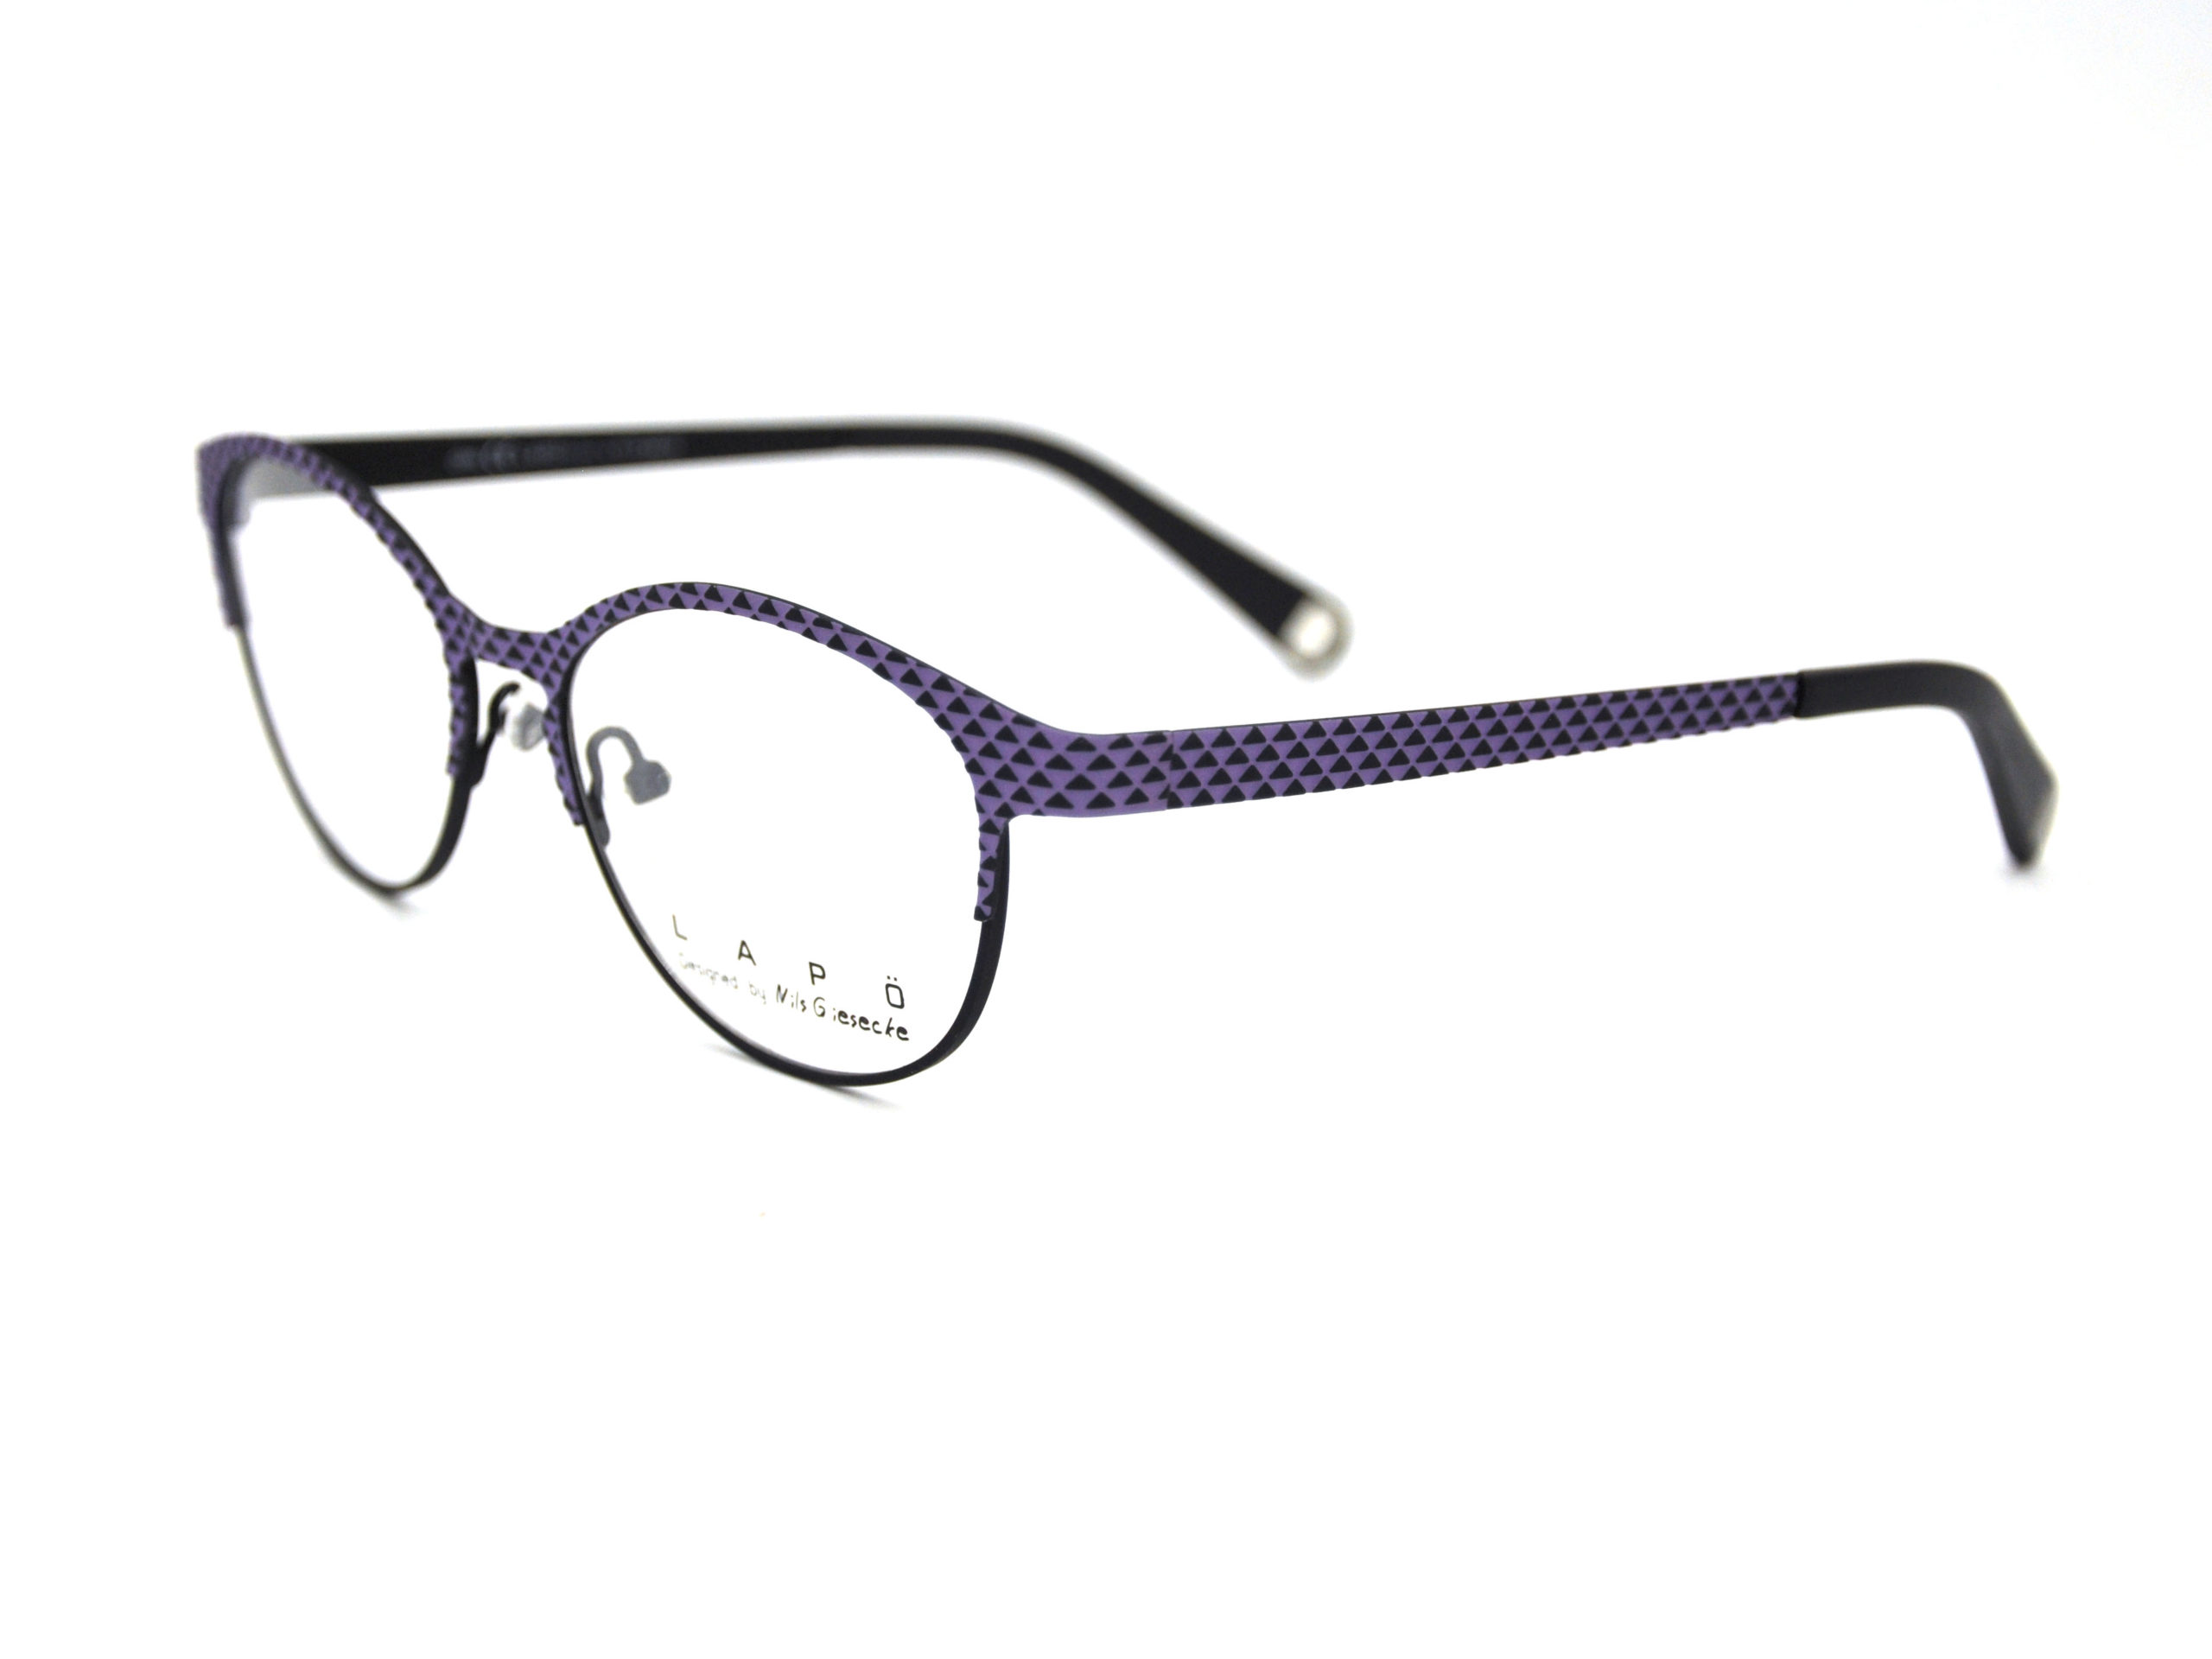 LAPO LA MM144 C61 Prescription Glasses 2020